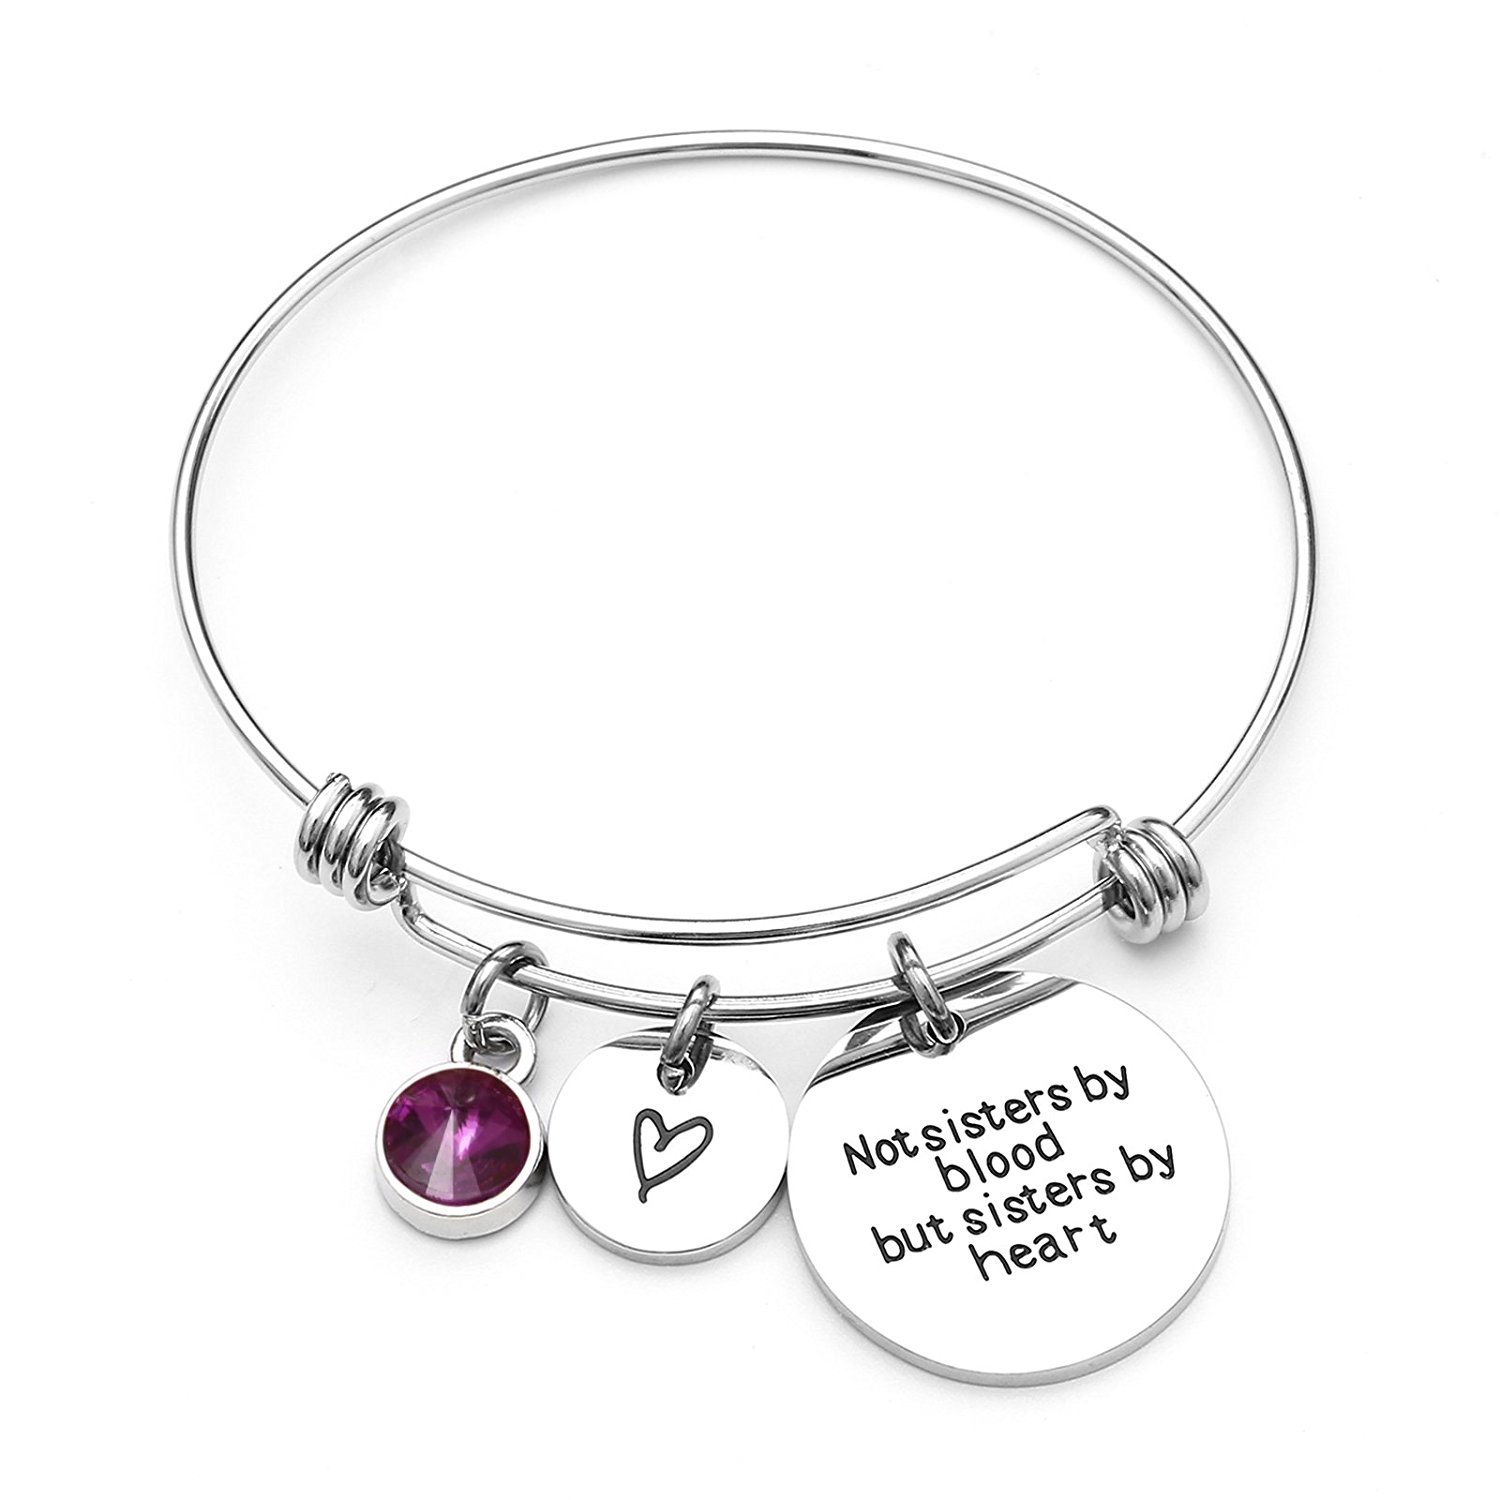 Angel's Draw Home Best Friends Bracelet- Not Sisters By Blood But Sisters By Heart Charm Bracelet- Graduation Gift,Sister Friend Jewelry Angel's Draw Home